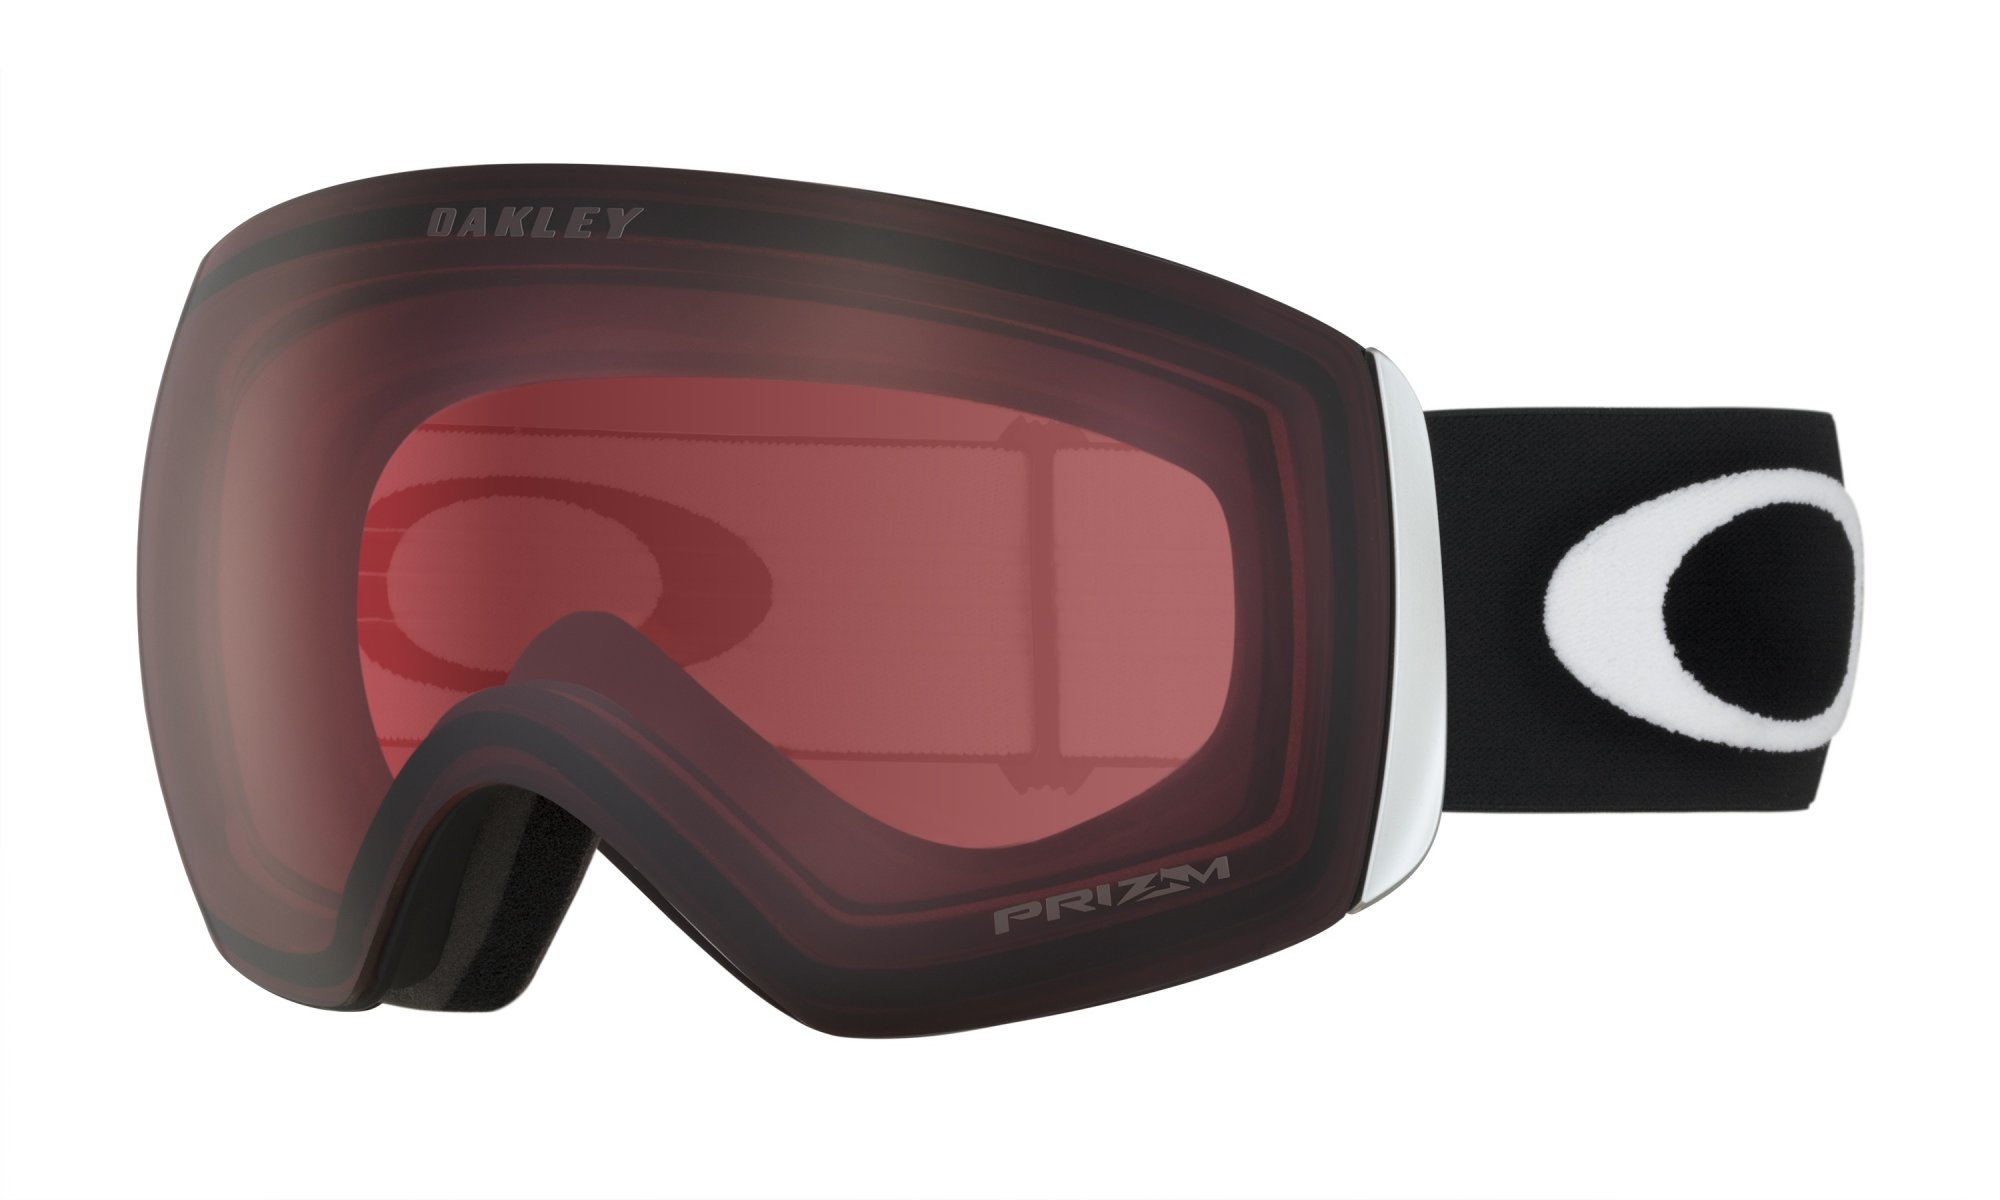 2020 Oakley Flight Deck Snow Goggle